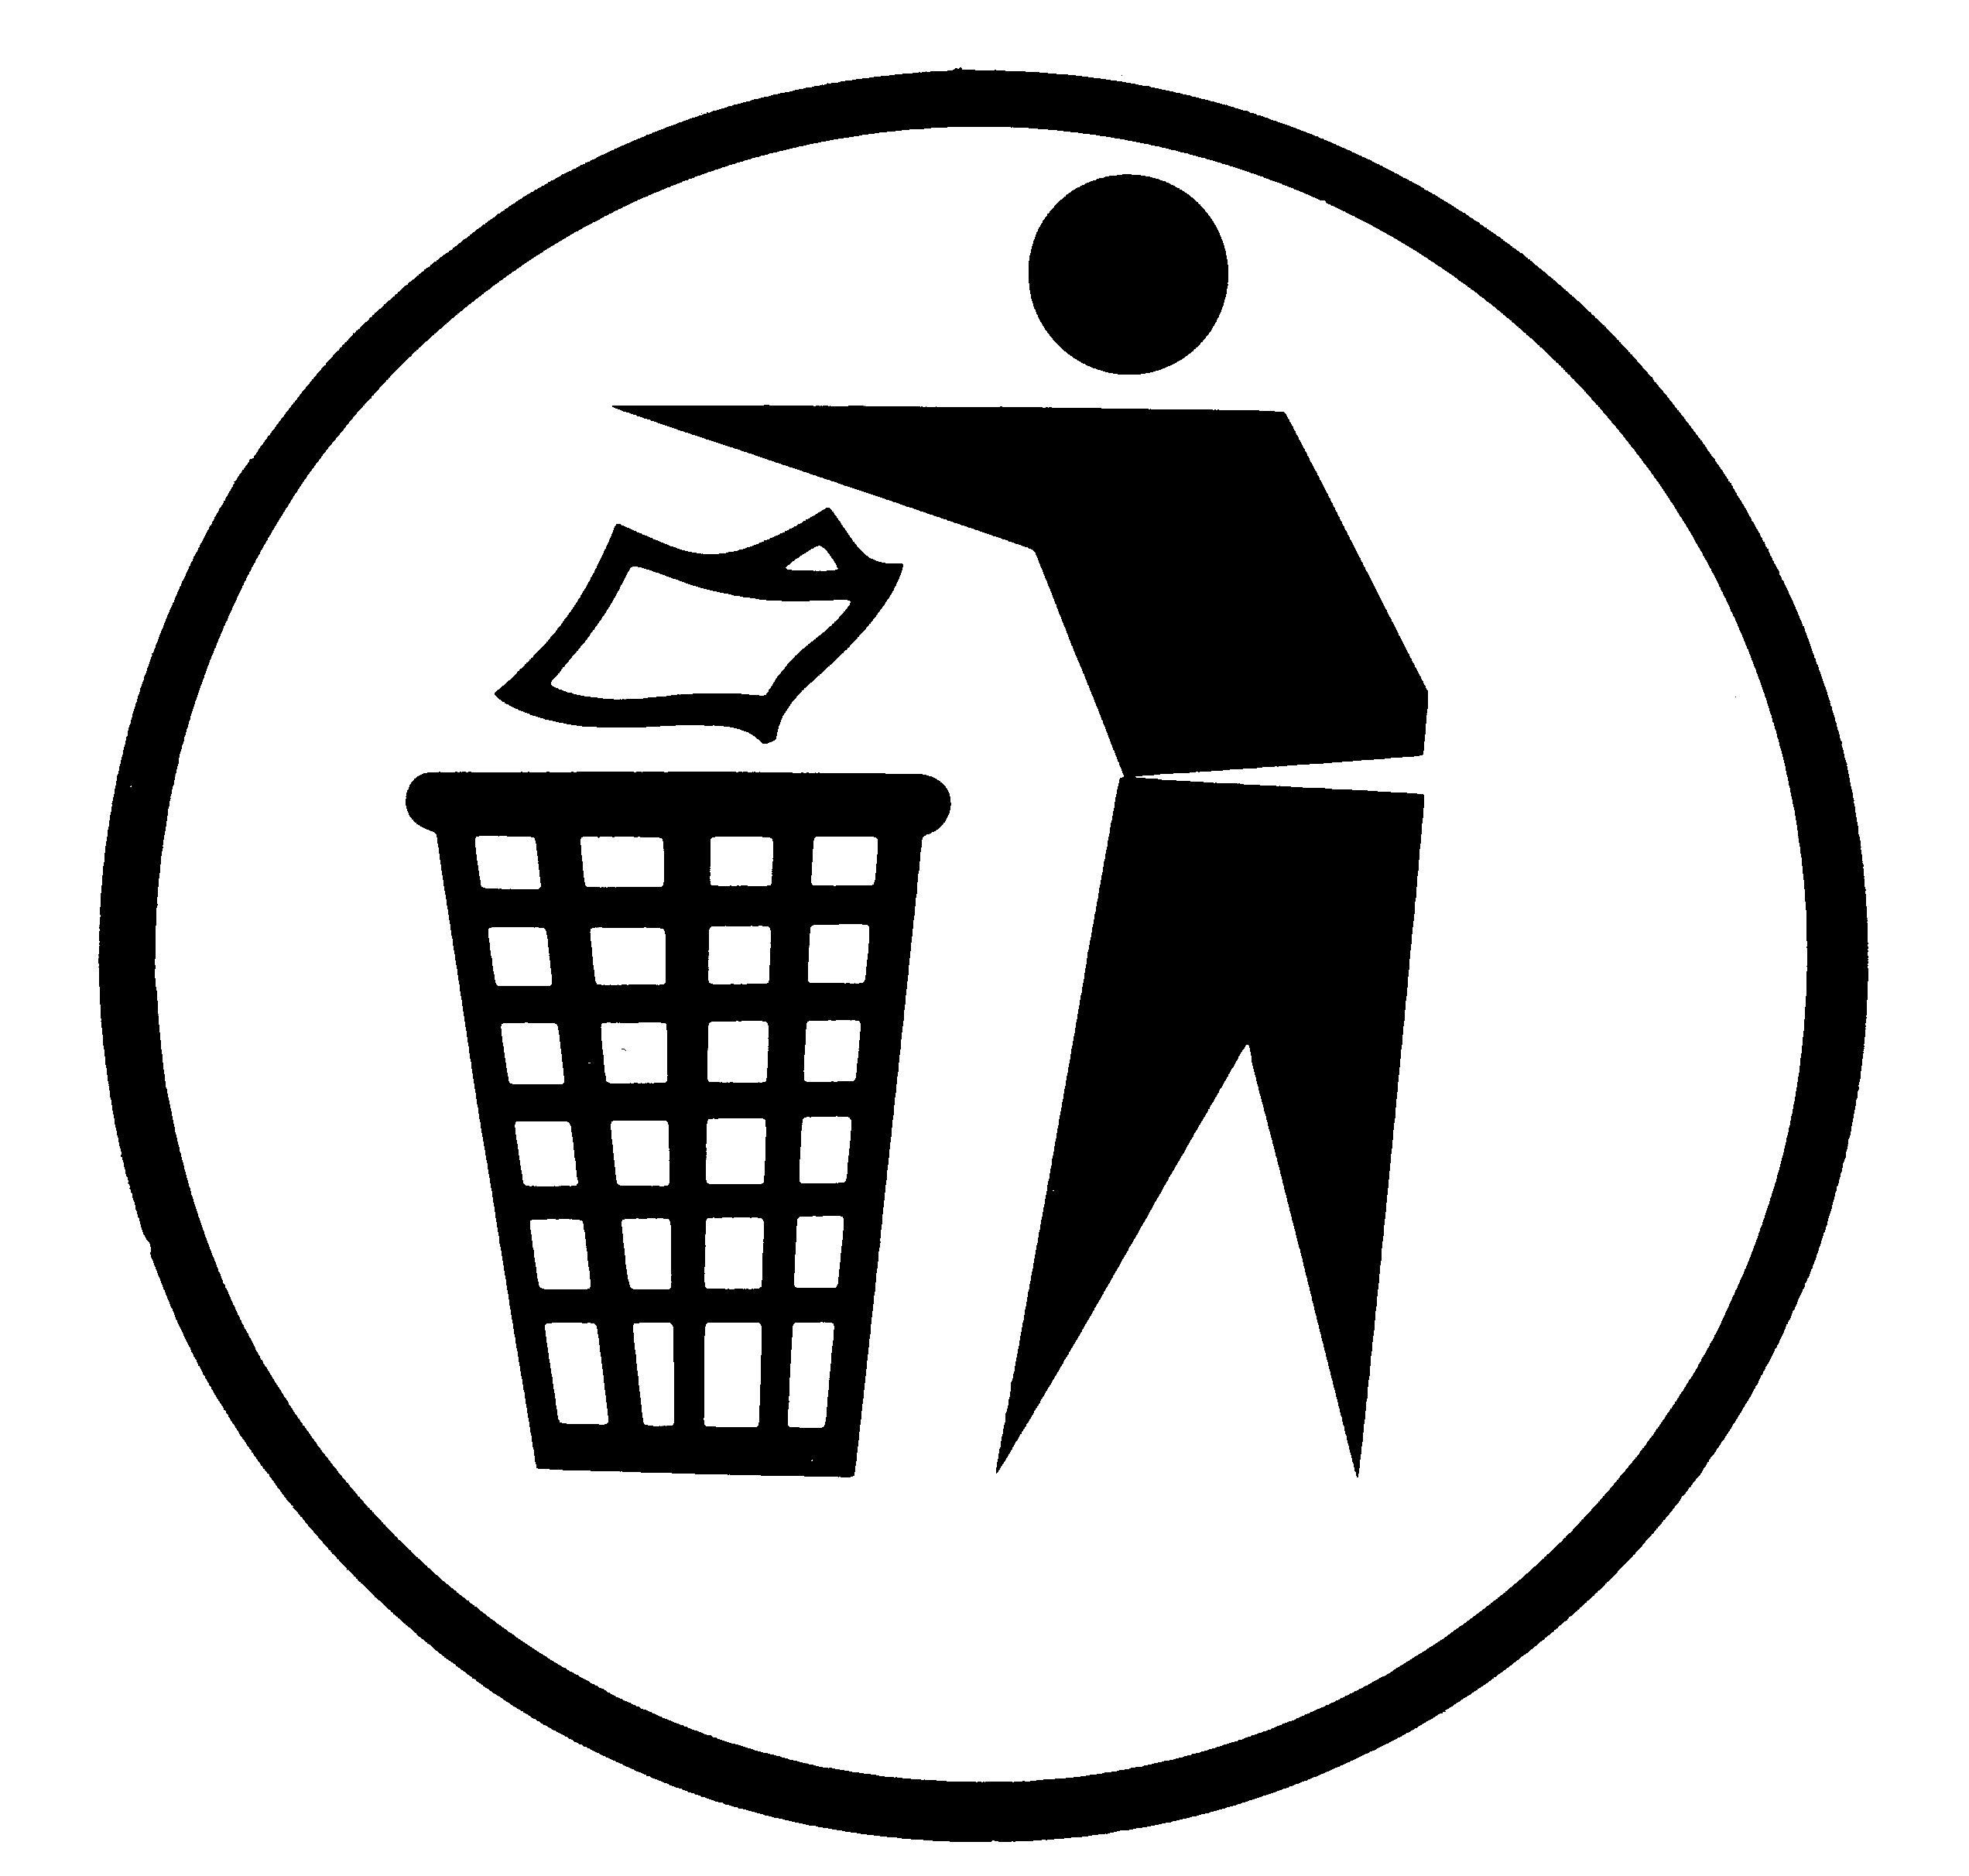 Sticker For Litter Bin